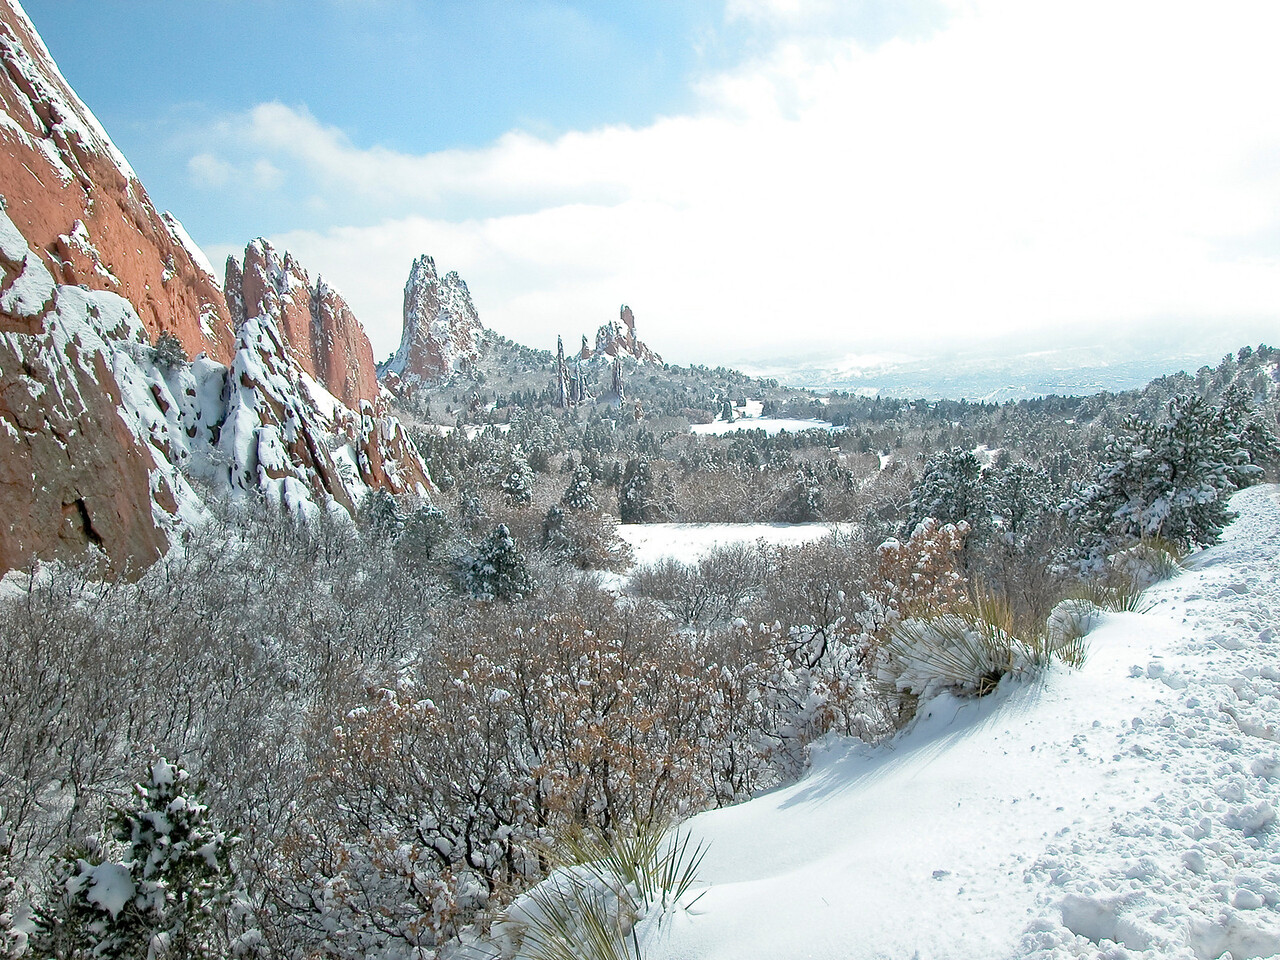 Here's a shot from a spring storm in the Garden of the gods in Colorado Springs.